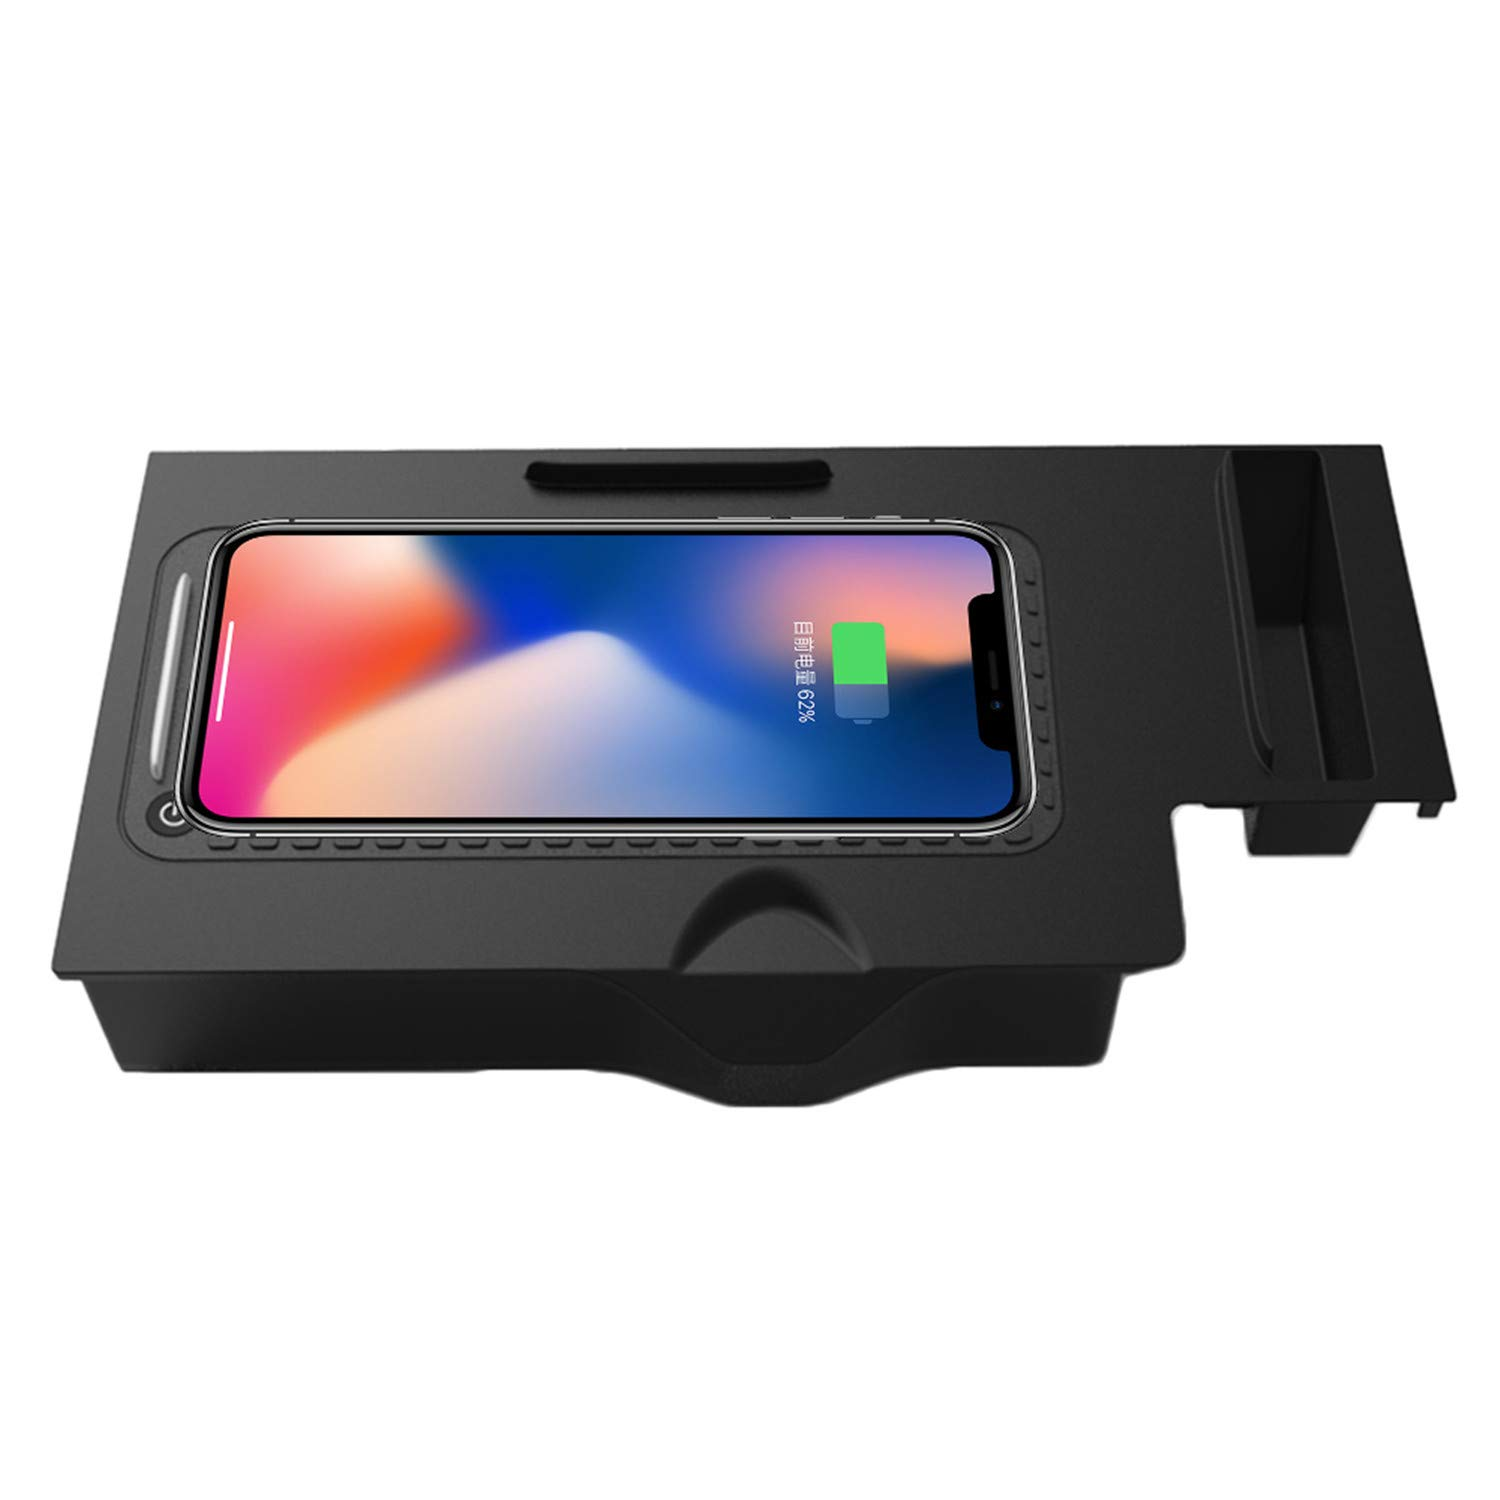 ZWNAV Wireless Car Charger Mount for BMW x3/x4 2018-2019, Qi Certified, 10W Fast Charging Compatible with iPhone XS/XR/X/8/8+, Samsung S9+ /S9 /S8/S7/Note 8 and Qi Enabled Devices